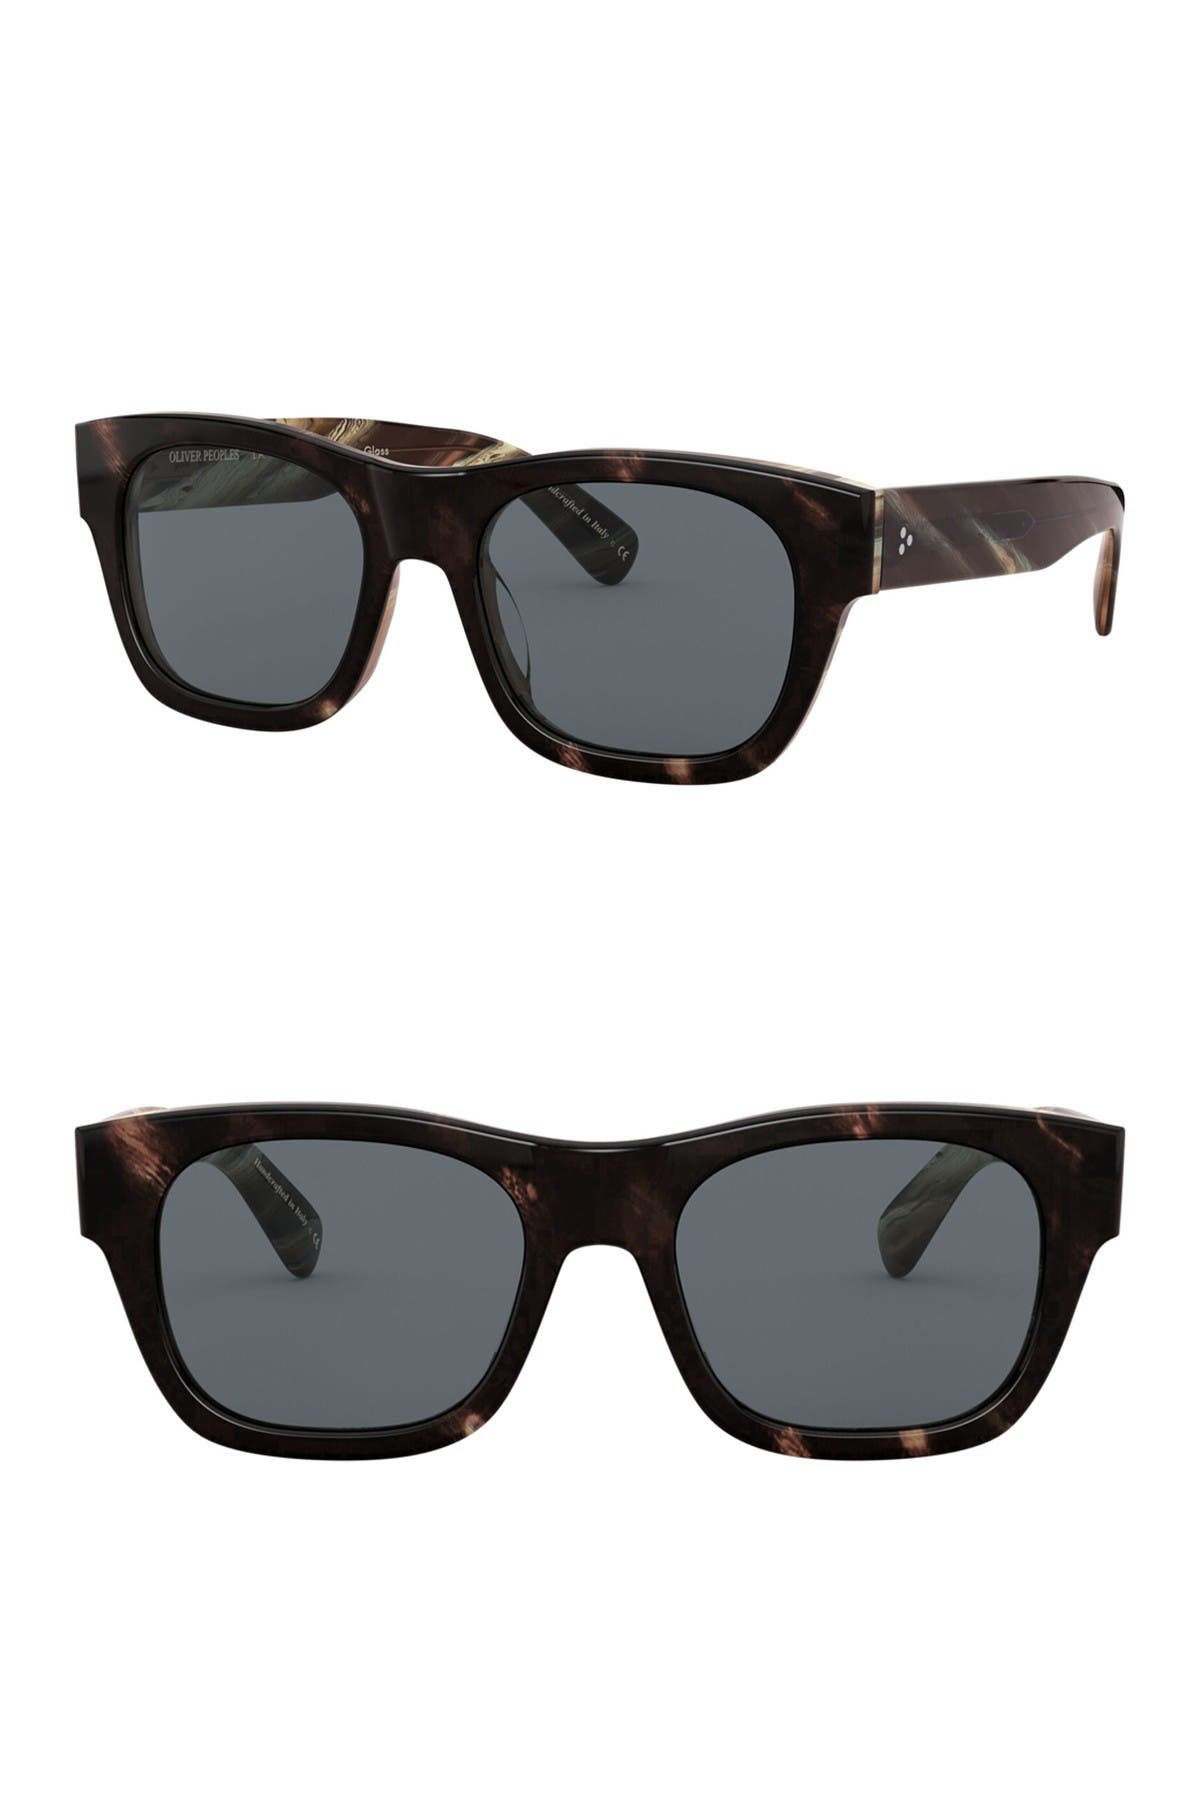 Image of Oliver Peoples Keenan 54mm Square Sunglasses